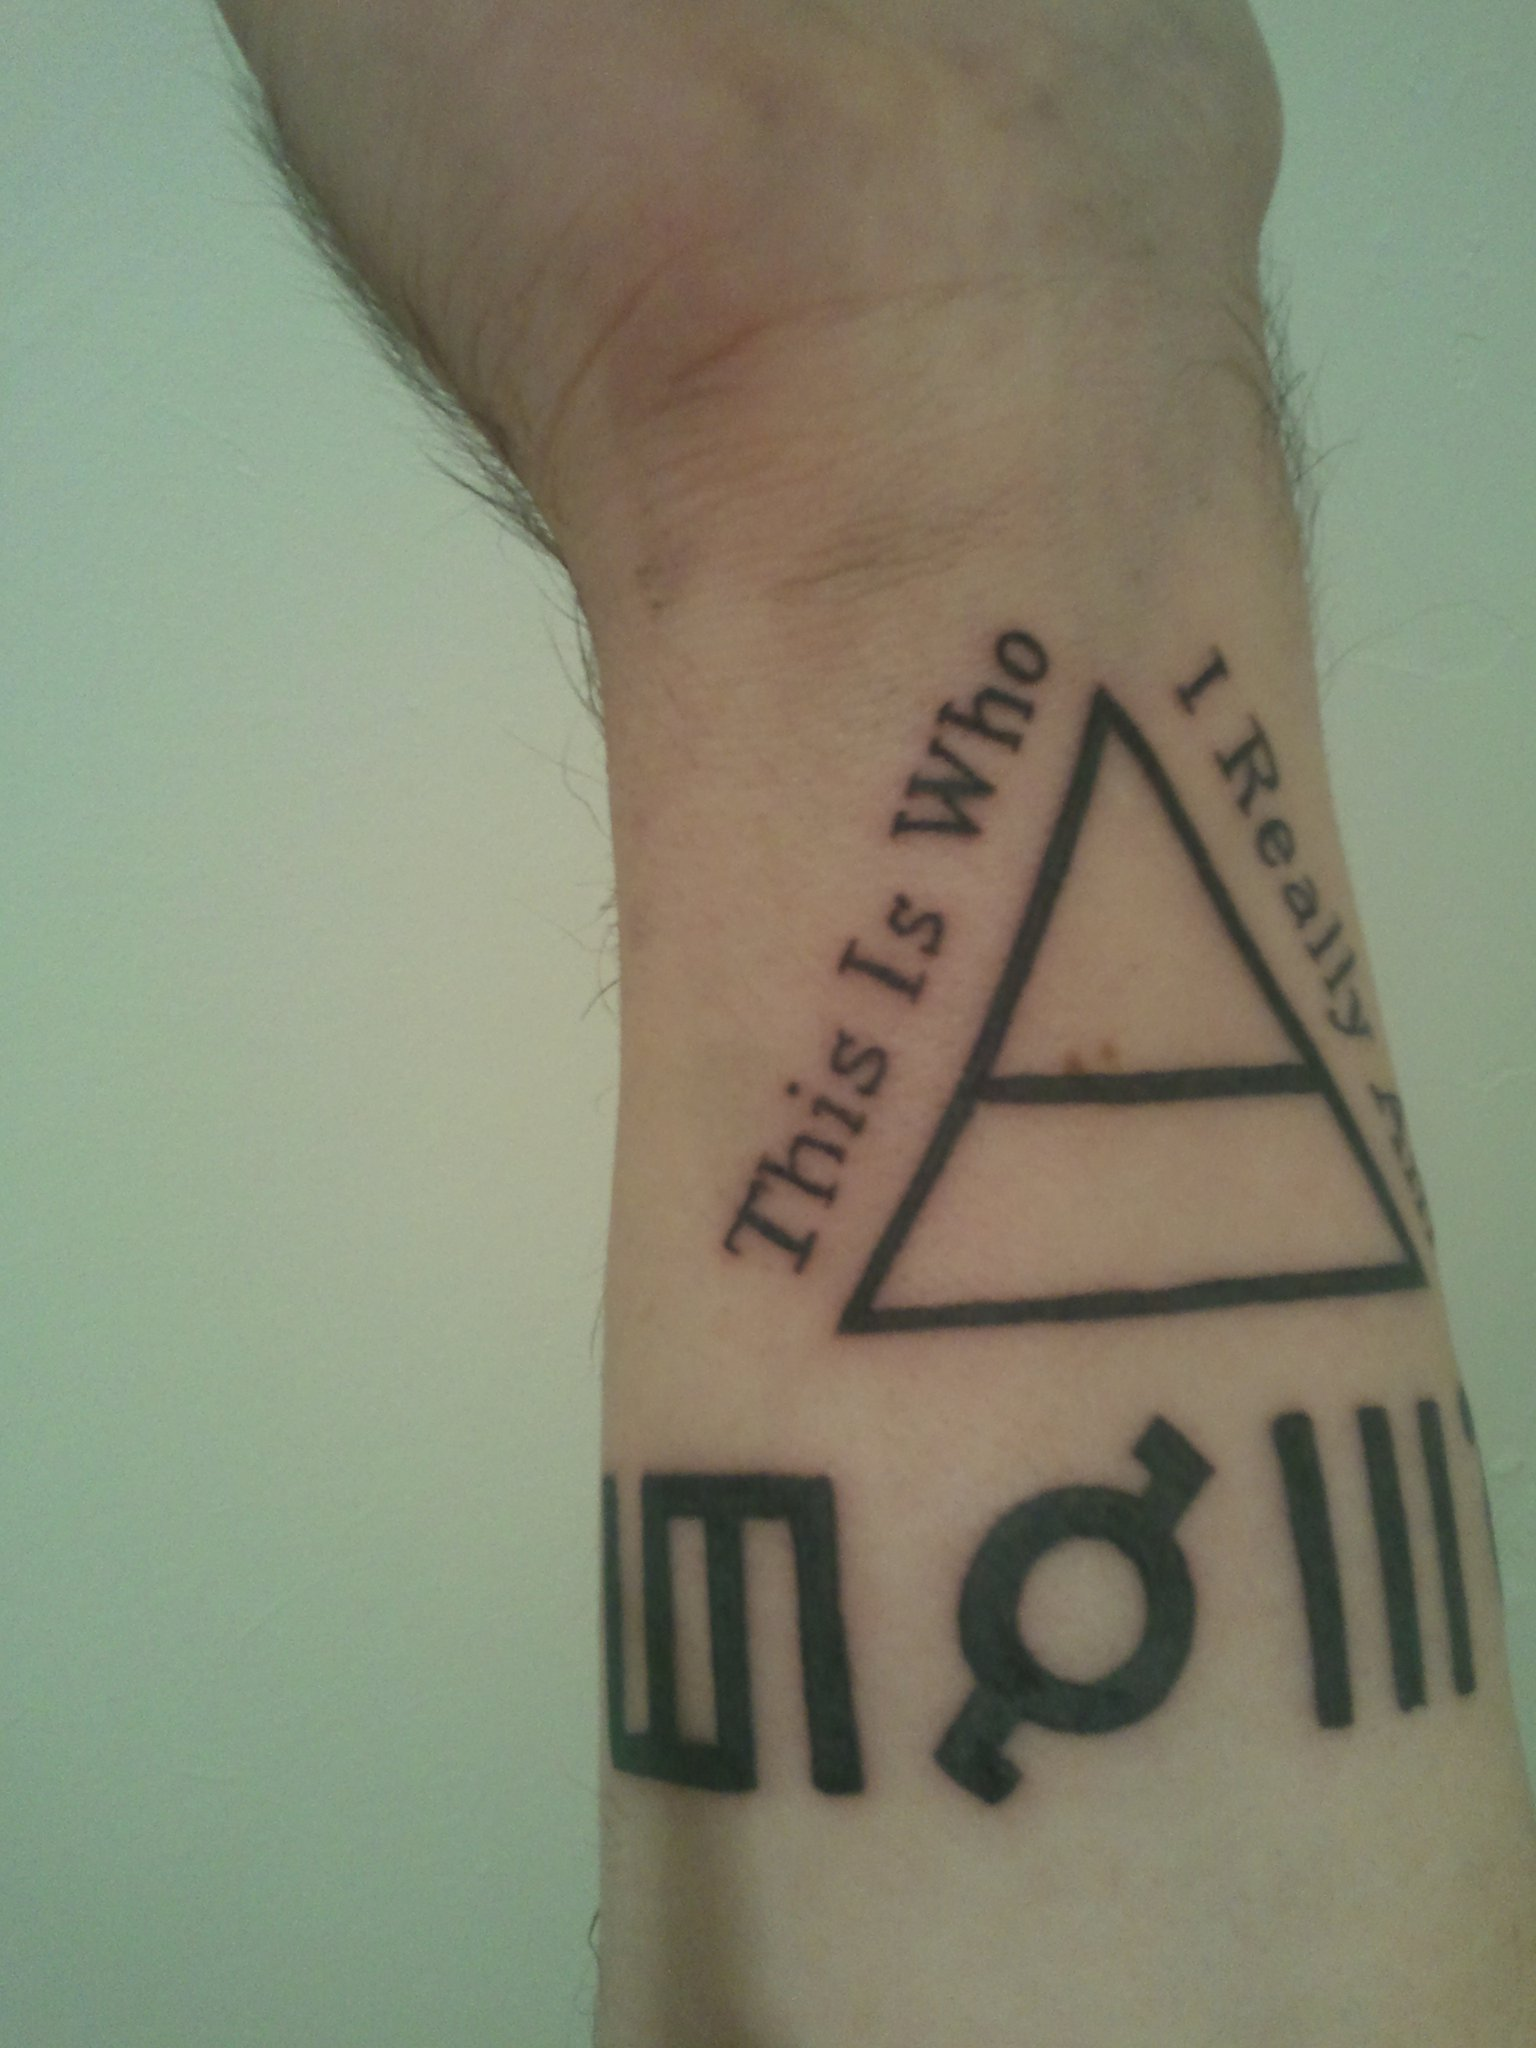 30 Seconds To Mars – Browny Soundwave Tattoo – Wall Of Sound Ideas And Designs